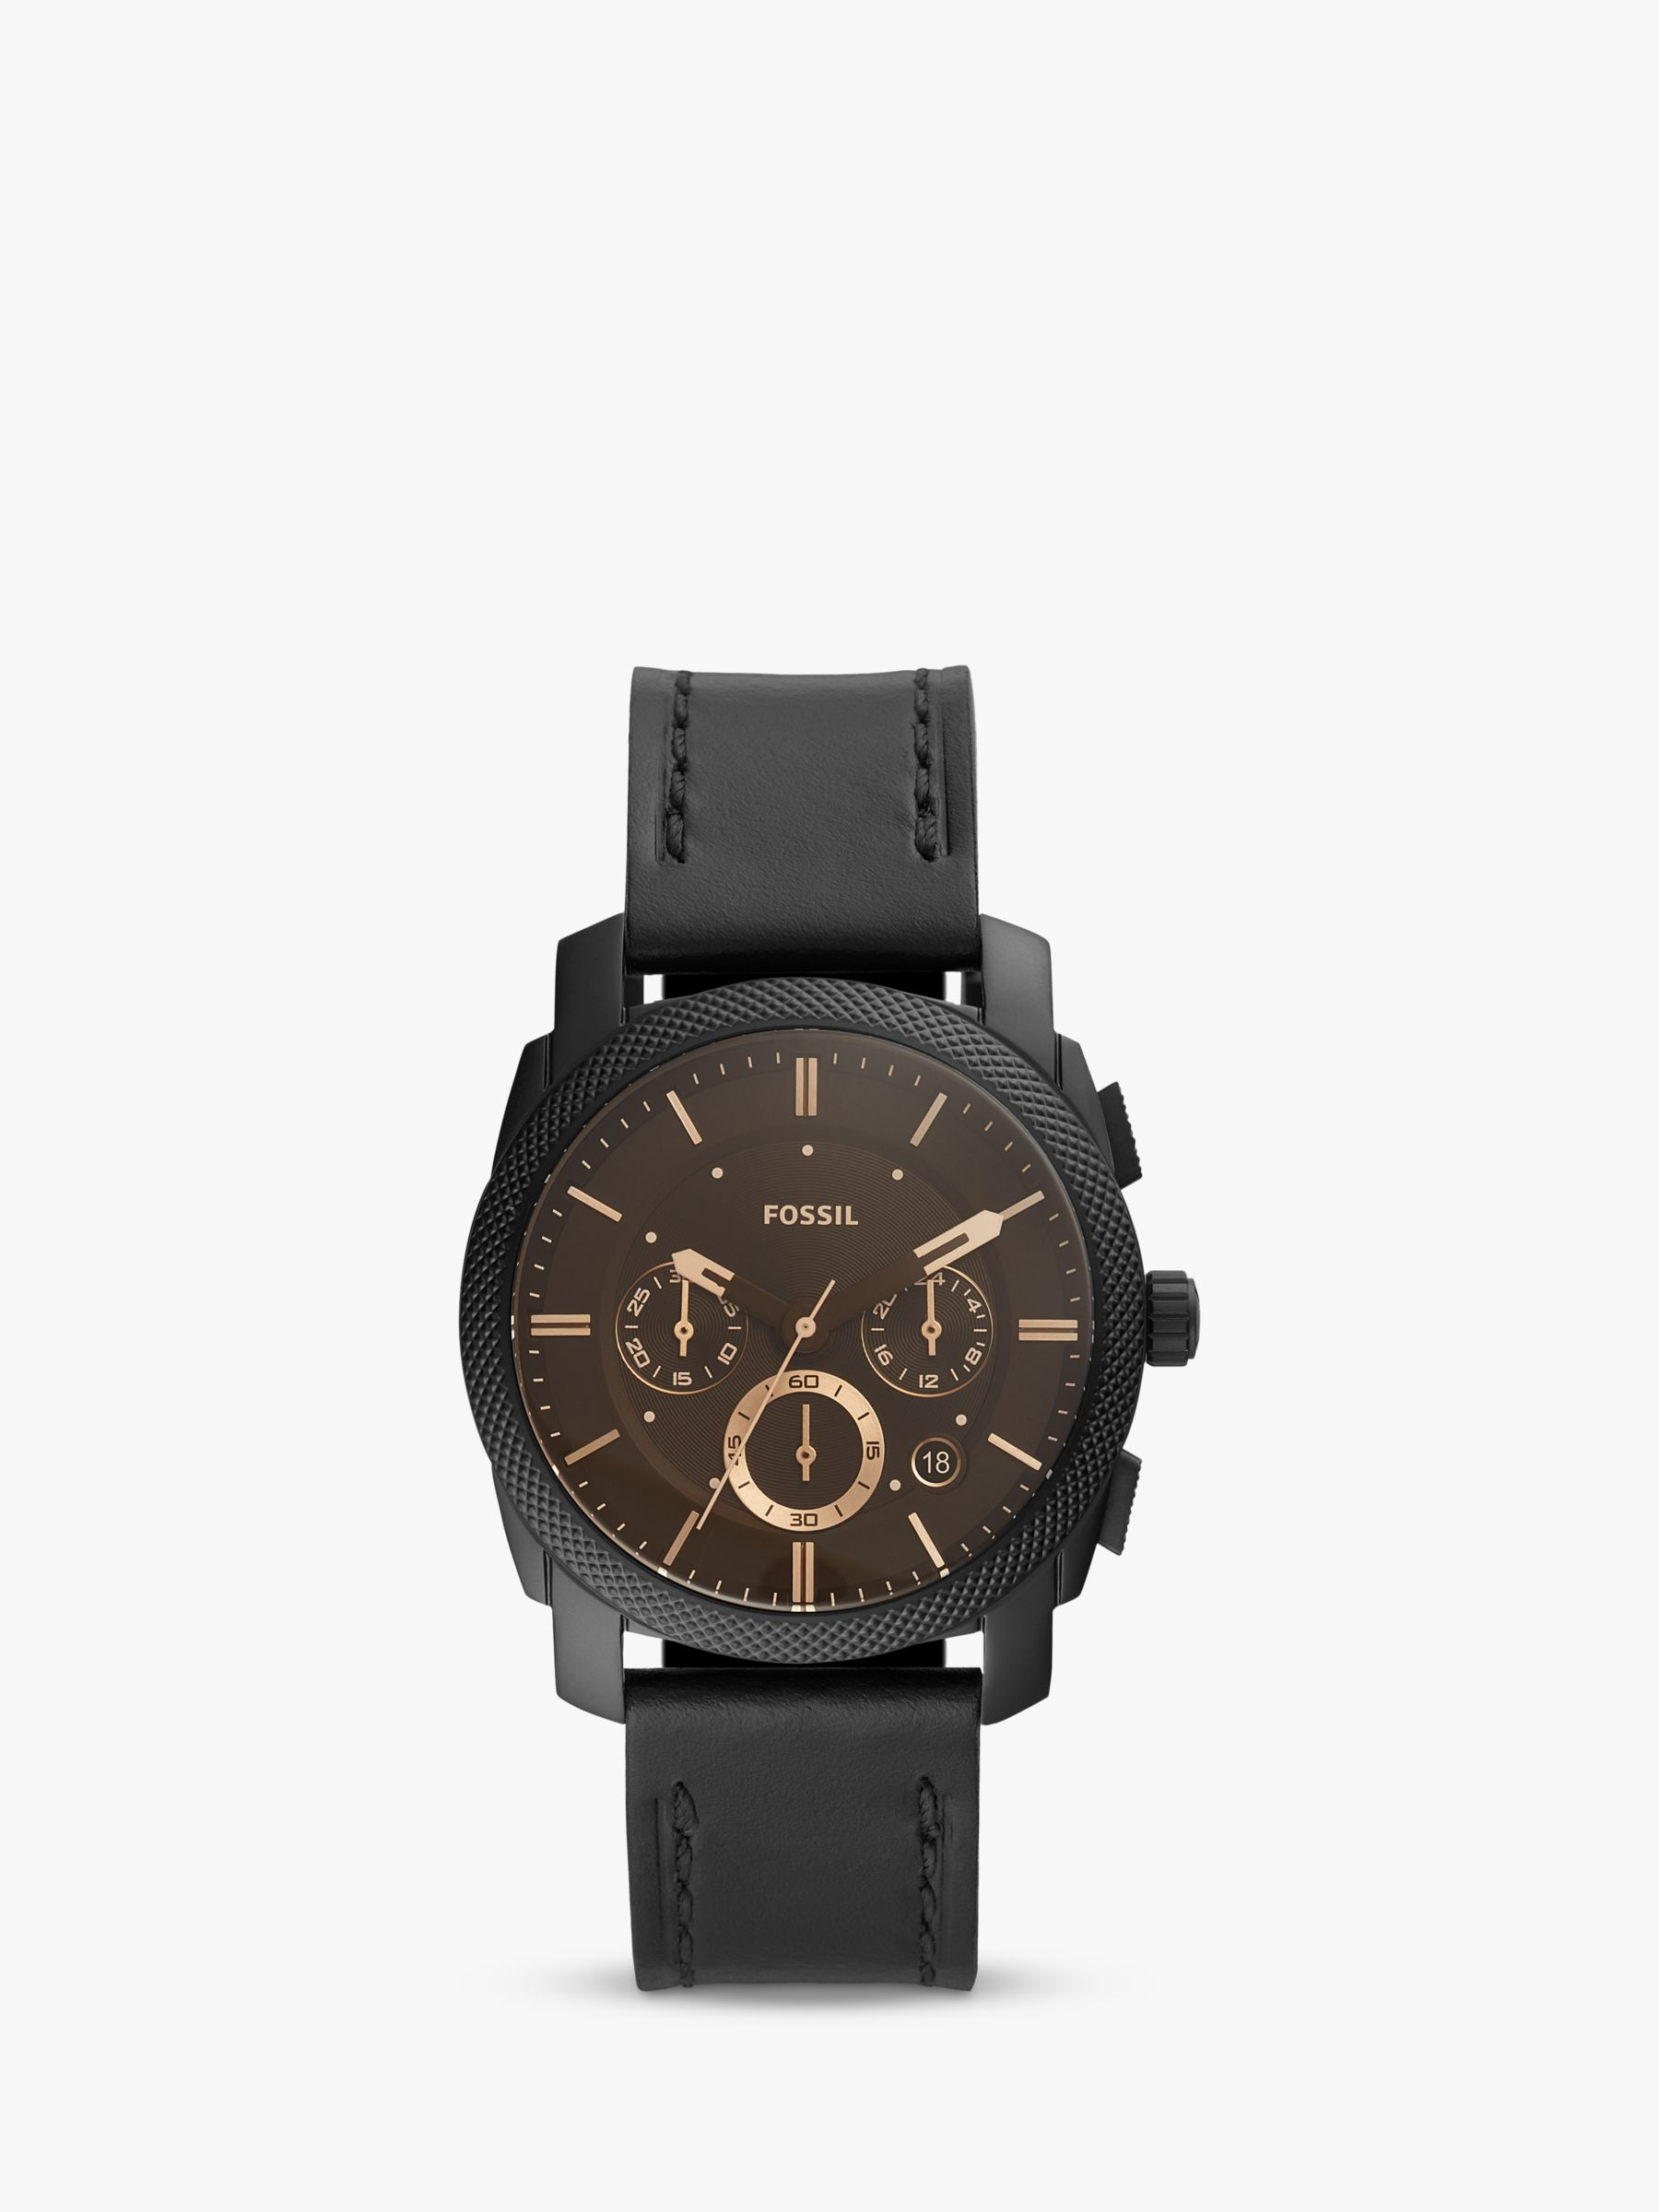 Fossil Fossil FS5586 Men's Machine Chronograph Date Leather Strap Watch, Black/Brown